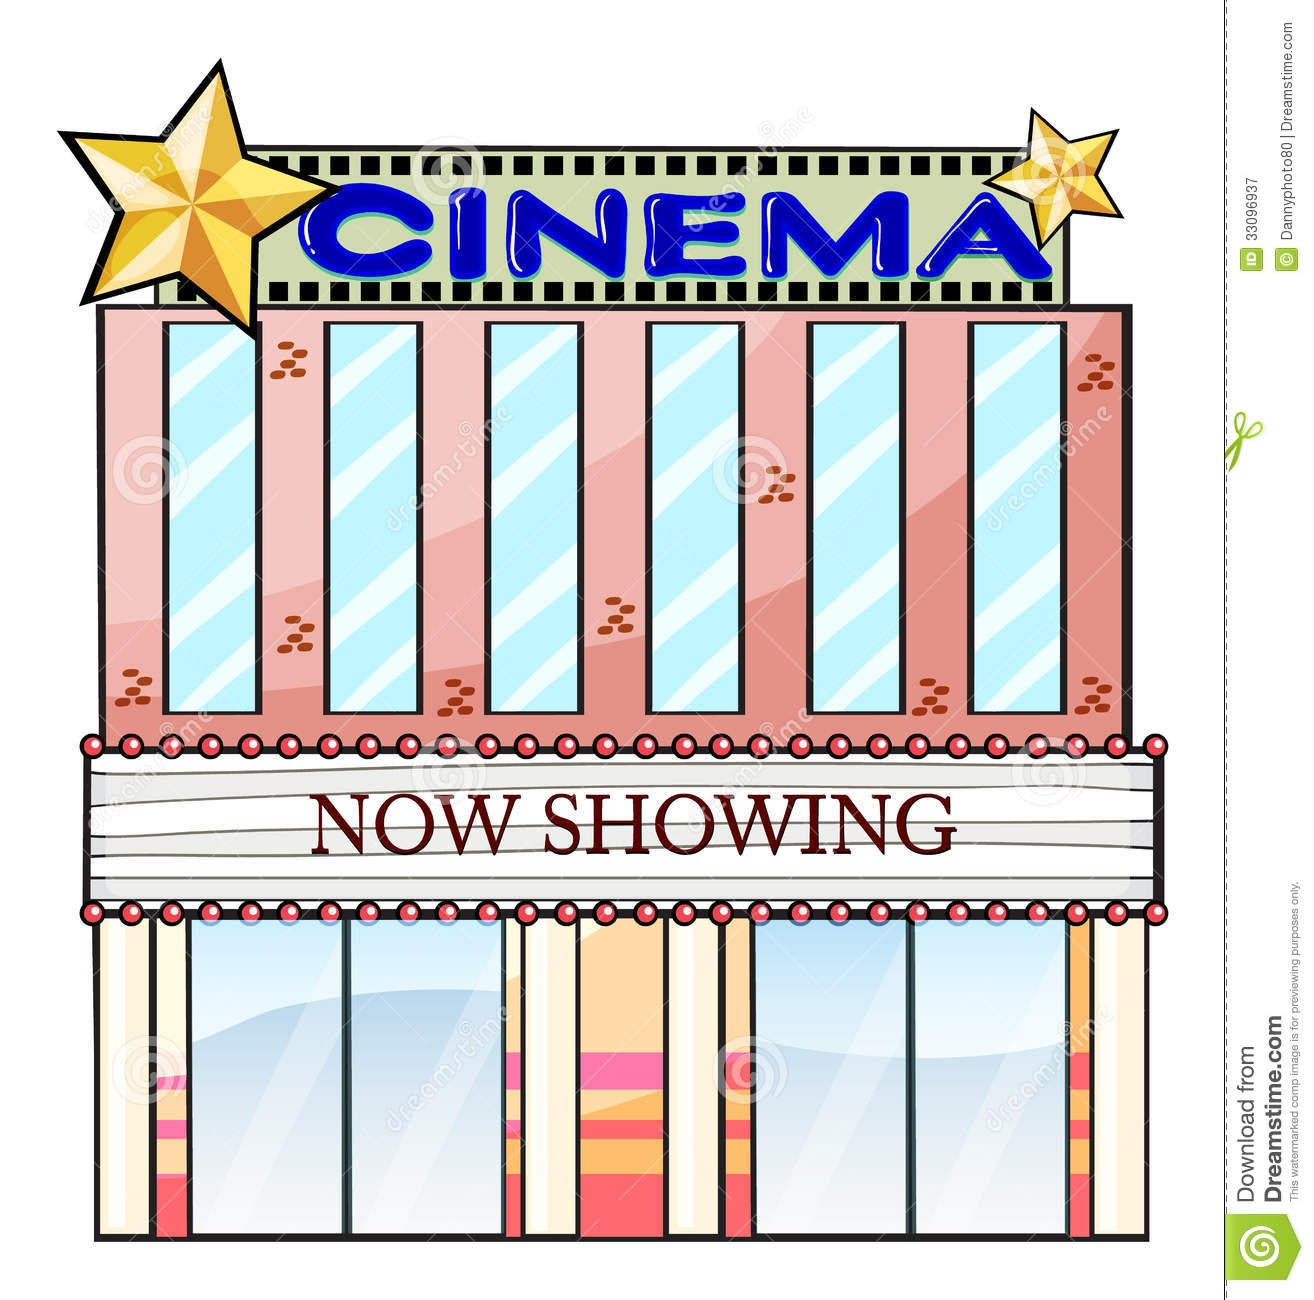 Clipart cinema abq.